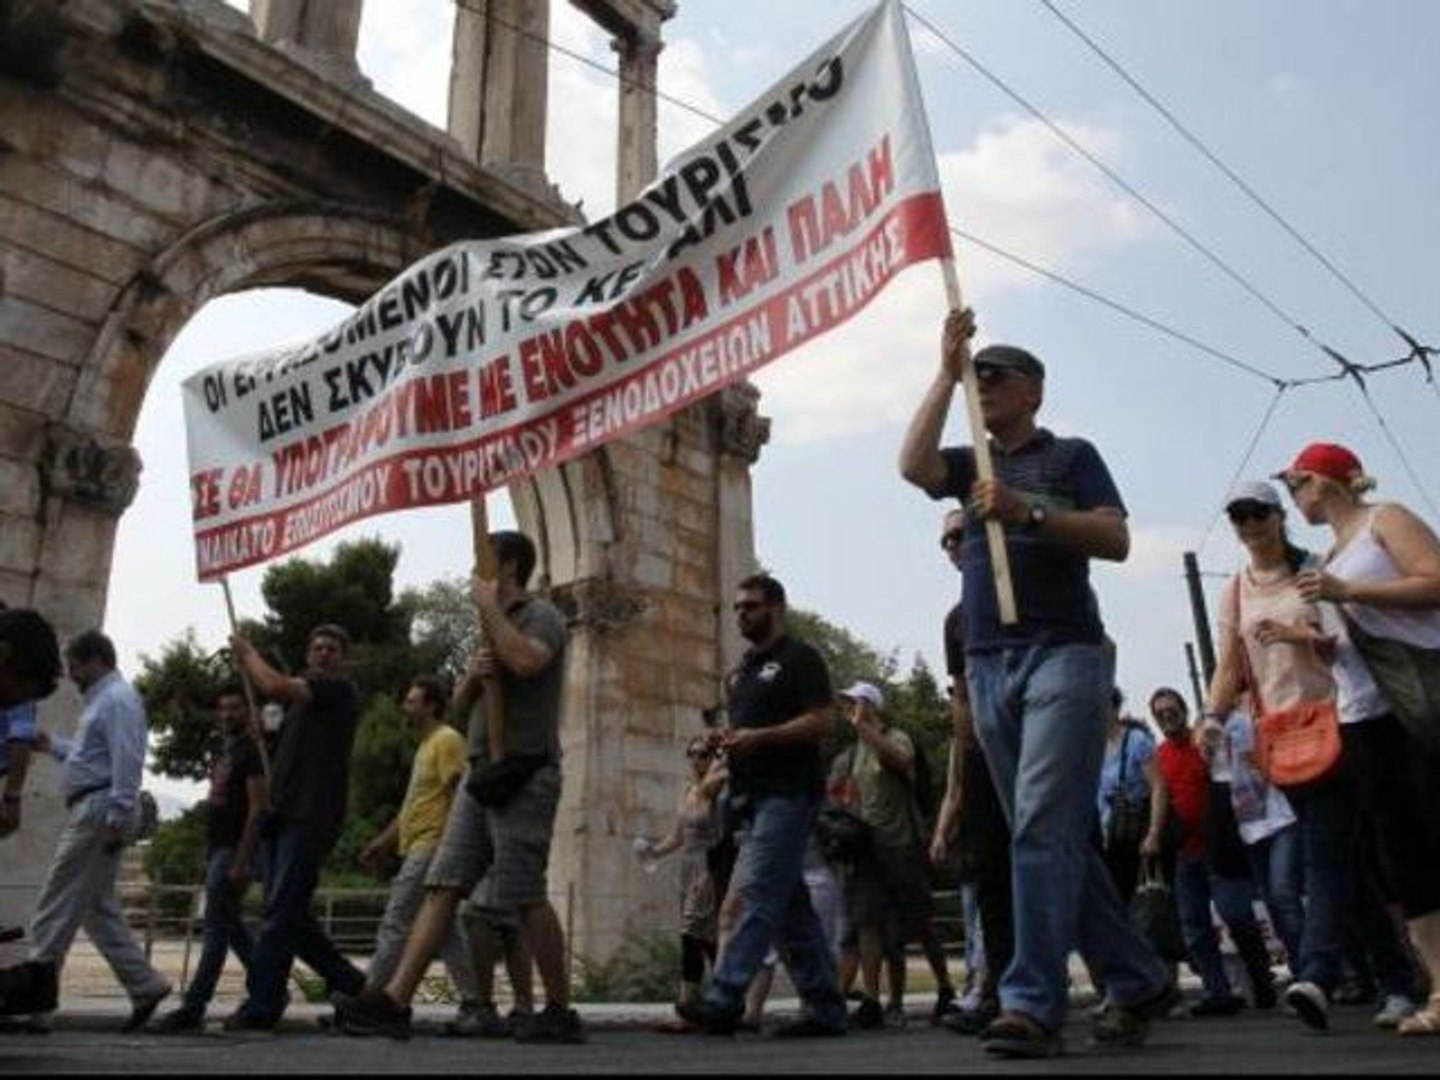 People protest wage cut in Greece